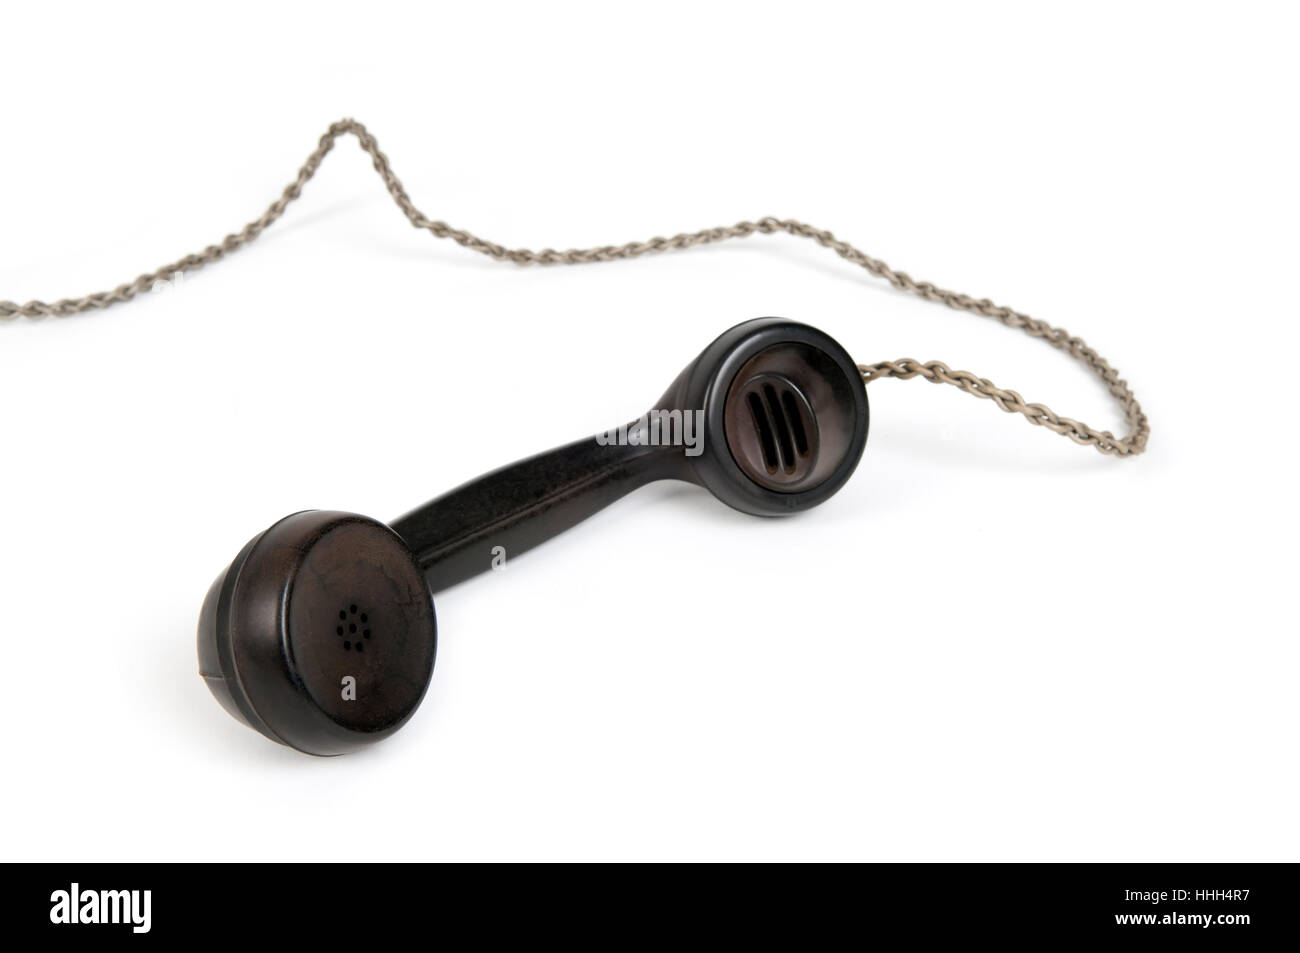 historical, antique, archaic, telephone receiver, old, telephone, phone, - Stock Image